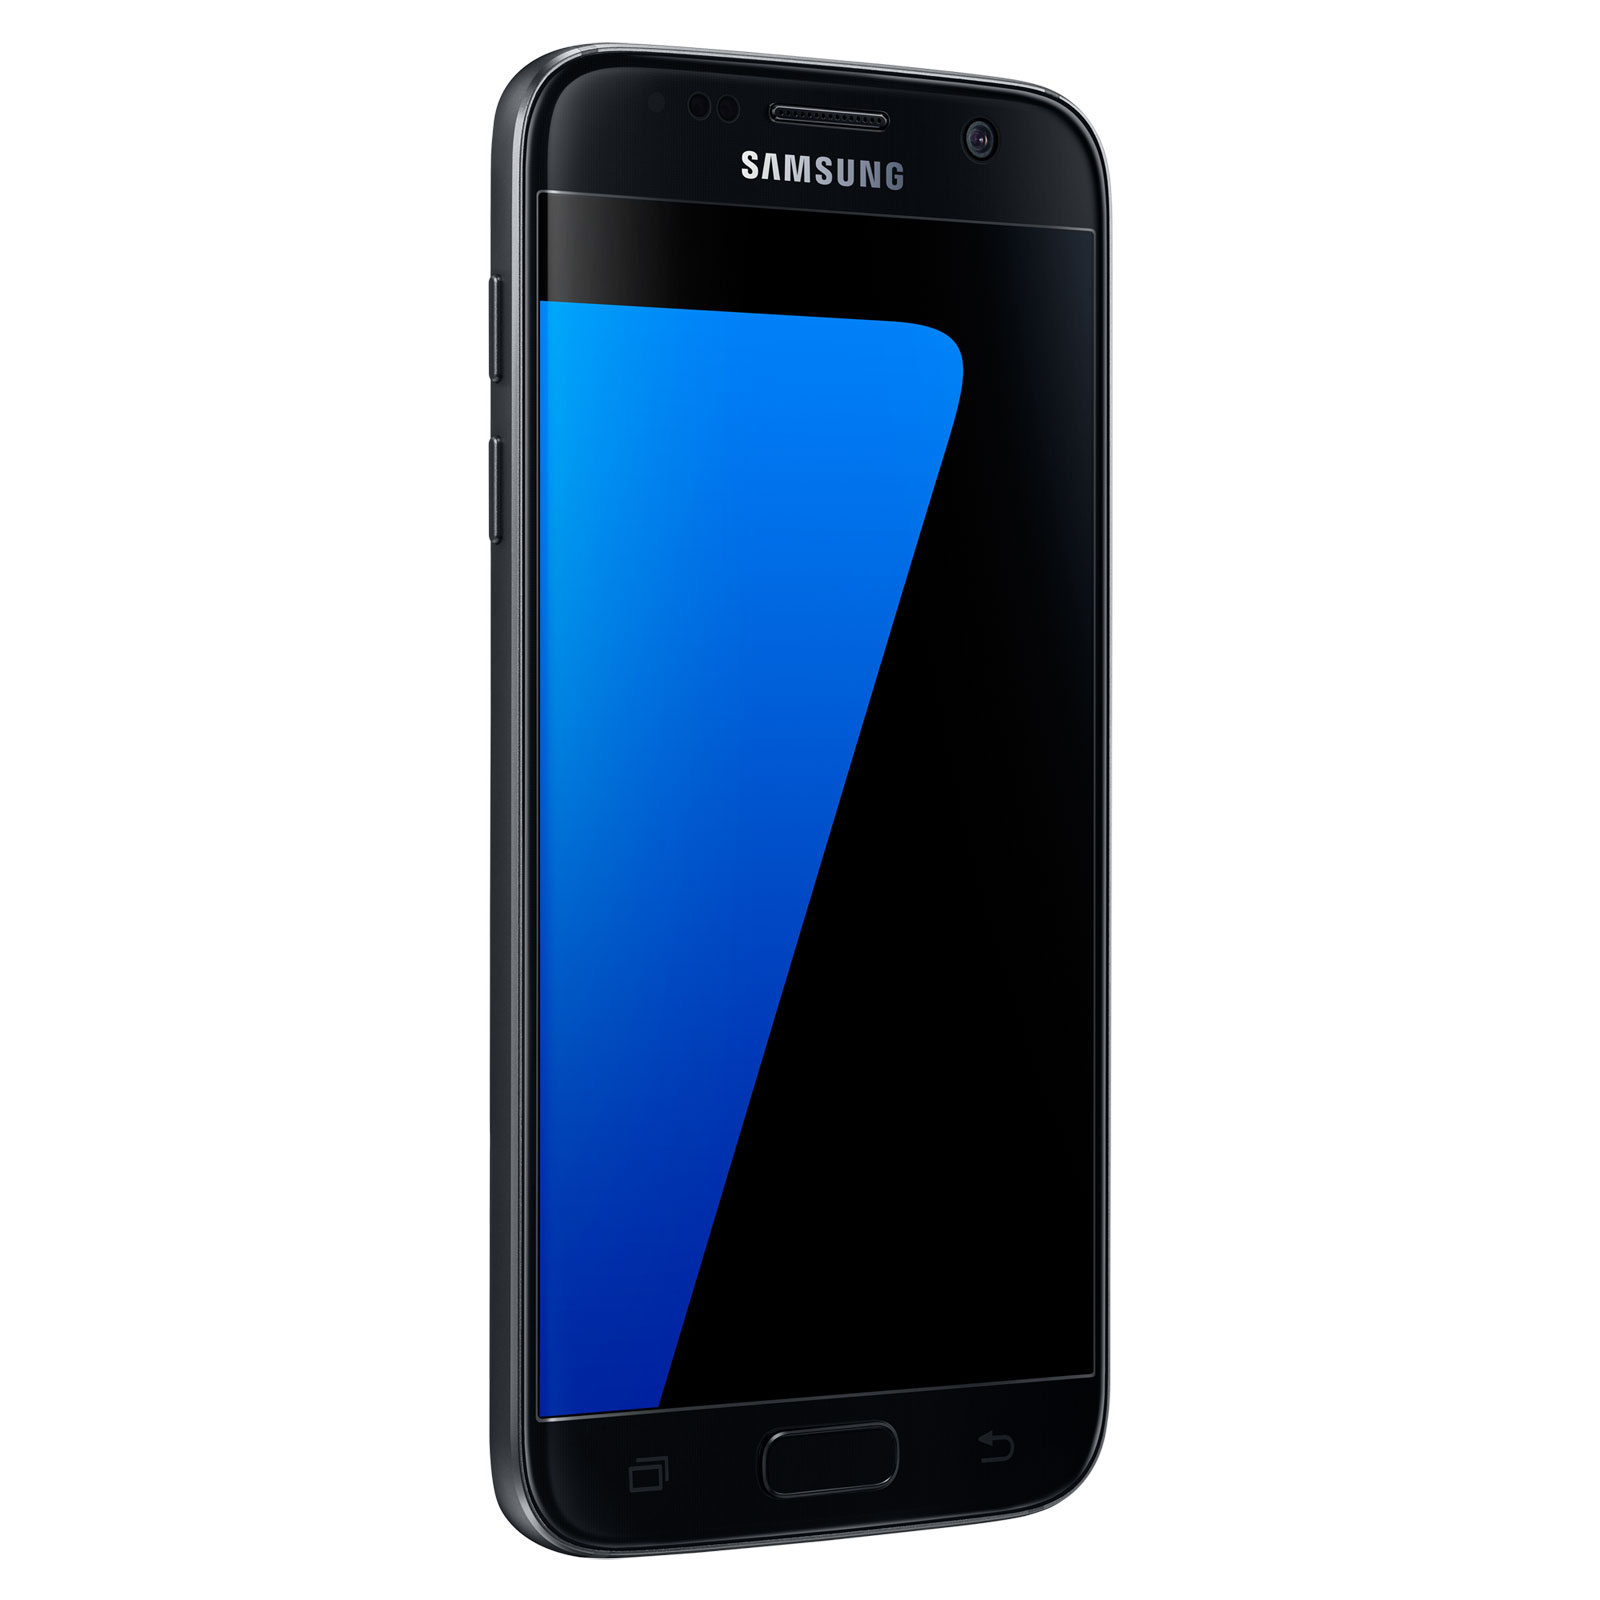 "Mobile & smartphone Samsung Galaxy S7 SM-G930F Noir 32 Go Smartphone 4G-LTE Advanced IP68 - Exynos 8890 8-Core 2.3 Ghz - RAM 4 Go - Ecran tactile 5.1"" 1440 x 2560 - 32 Go - NFC/Bluetooth 4.2 - 3000 mAh - Android 6.0"